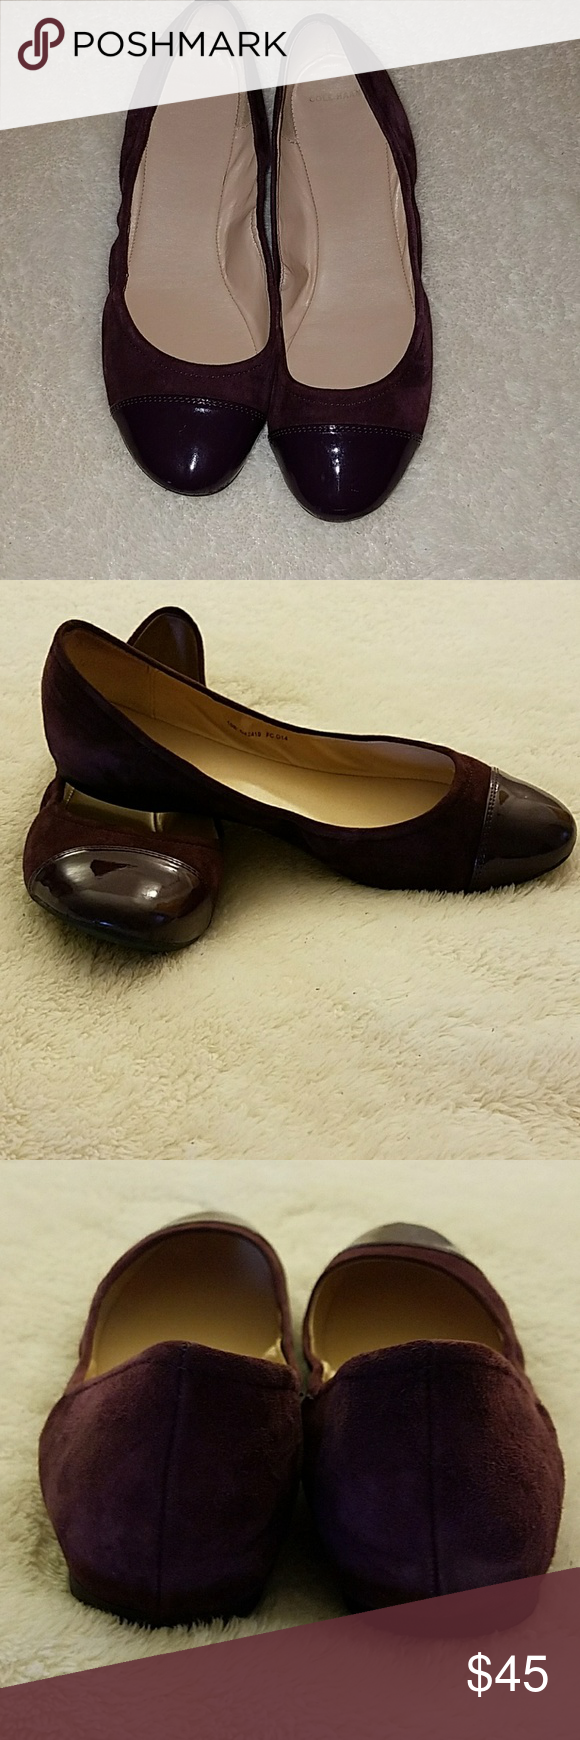 Size 10 Cole Haan Plum Ballet Flats! Size 10, fits true to size! Very  comfortable flats by Cole Haan. They are suede and patent leather on the  cap toe.